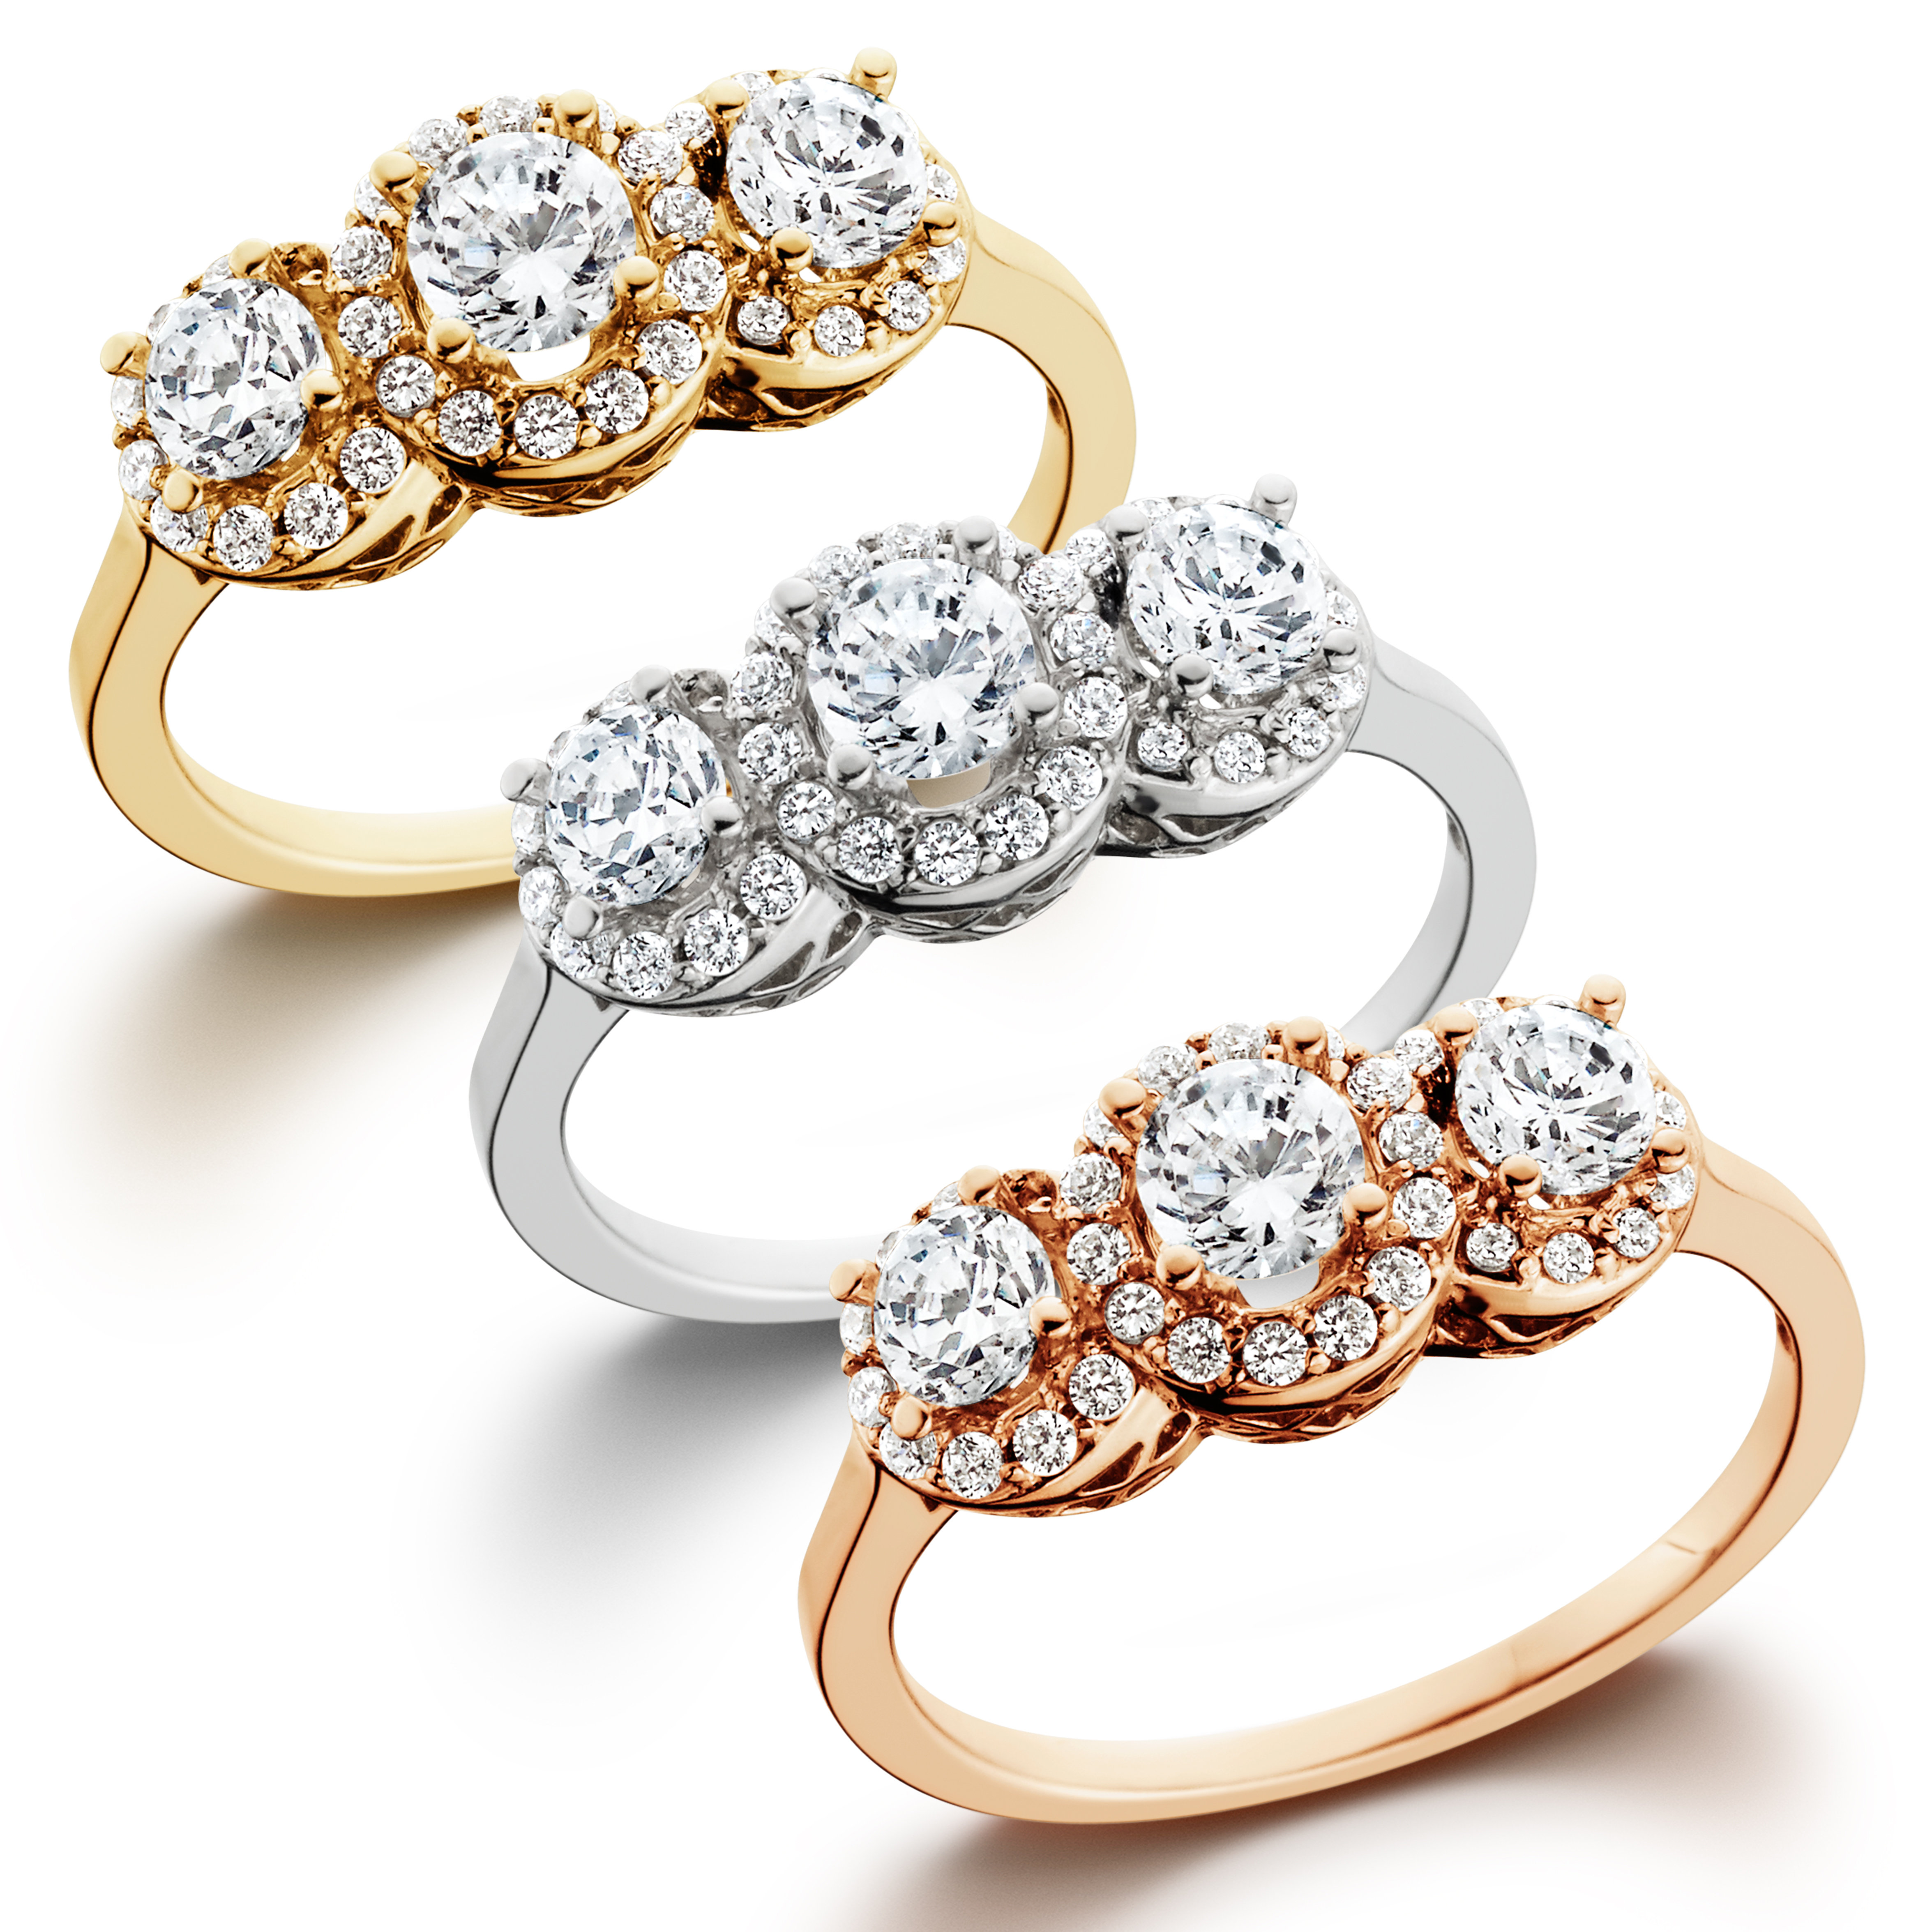 jewellery engagement sidestones shaped rings inspirations platinum ring throughout settings setting pear of shape in classic